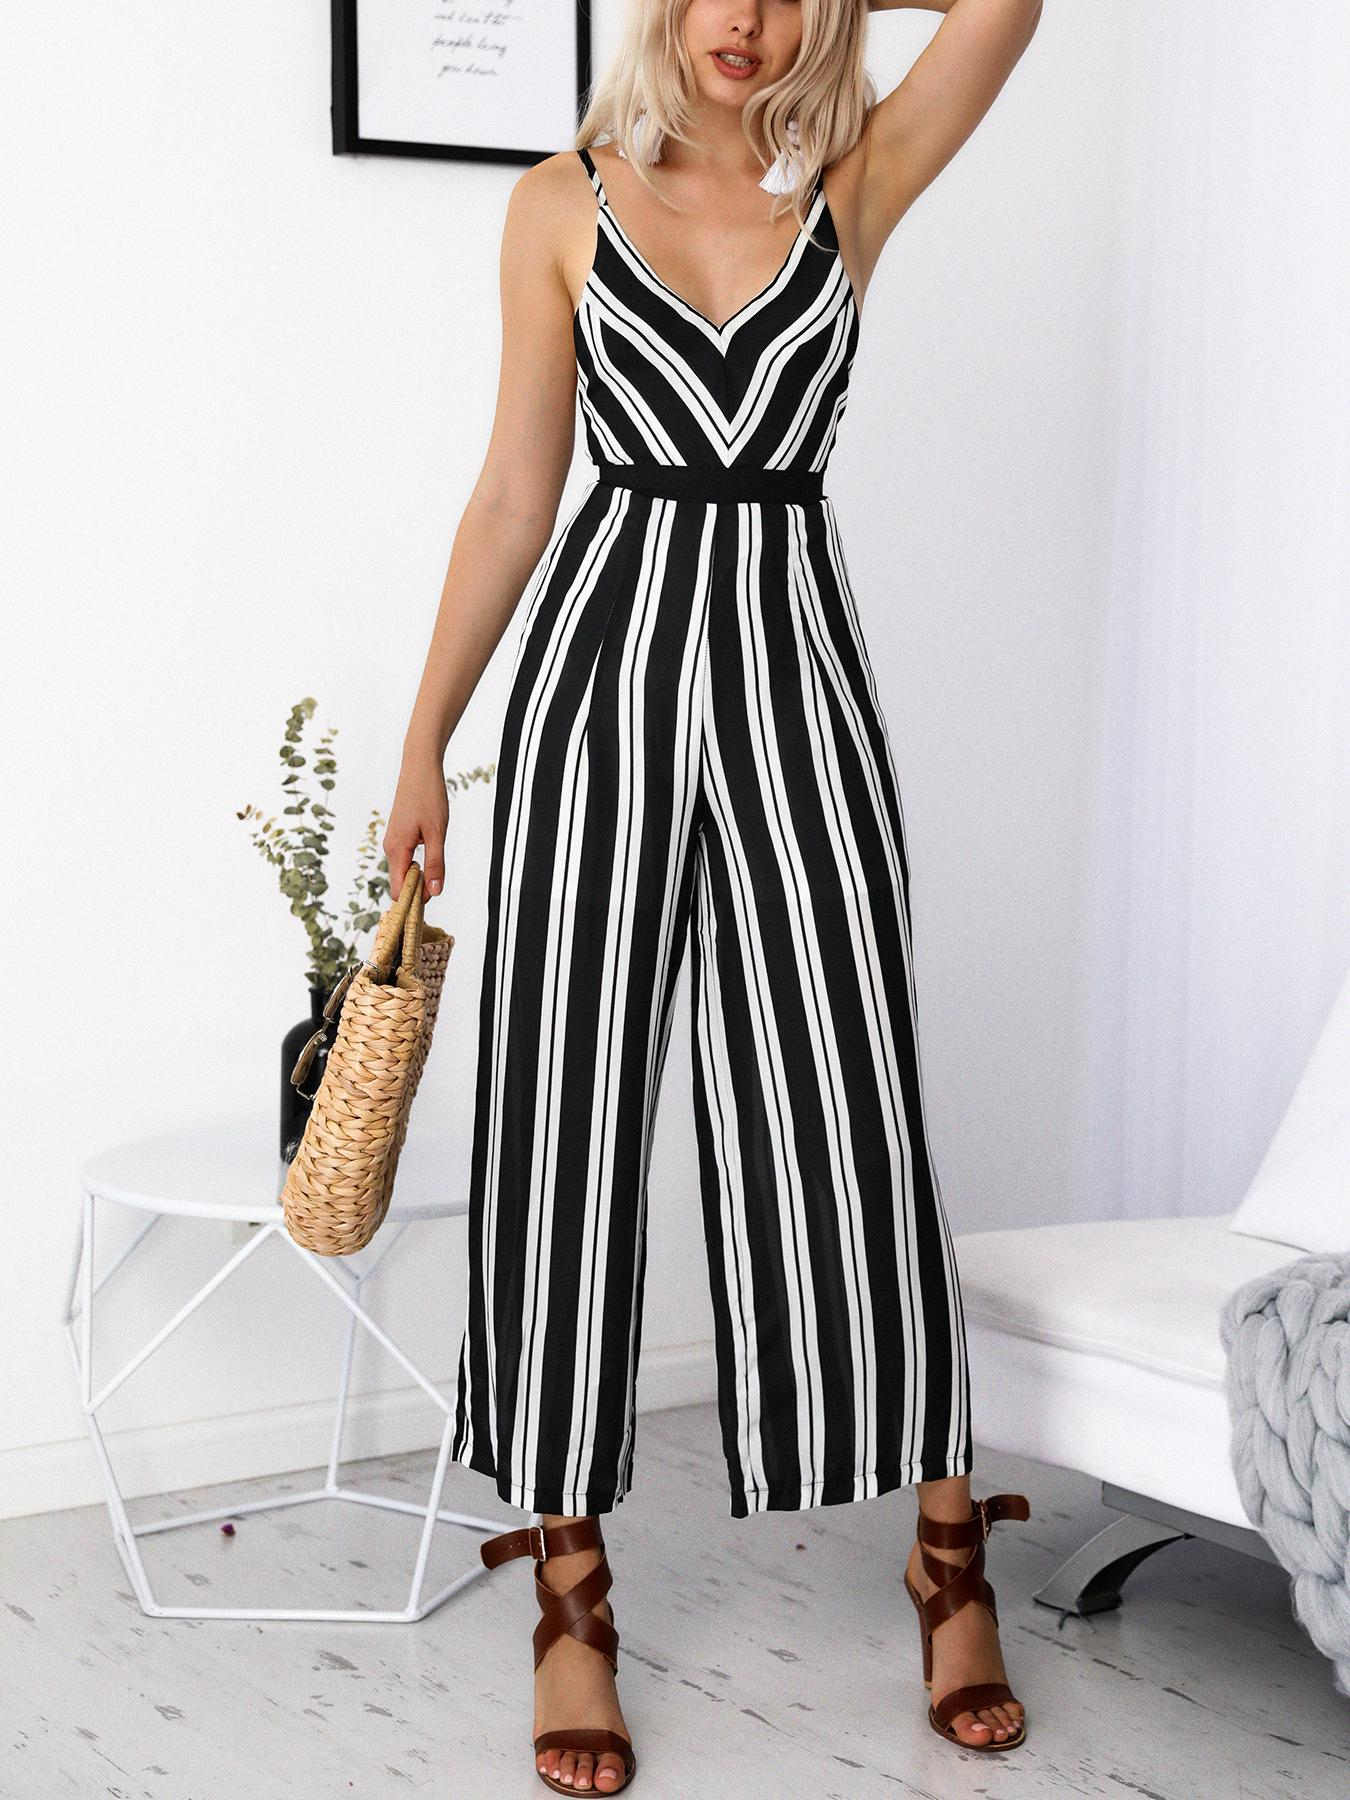 61695ab649b Striped Deep V Strappy Back Wide Leg Jumpsuit Online. Discover hottest  trend fashion at chicme.com